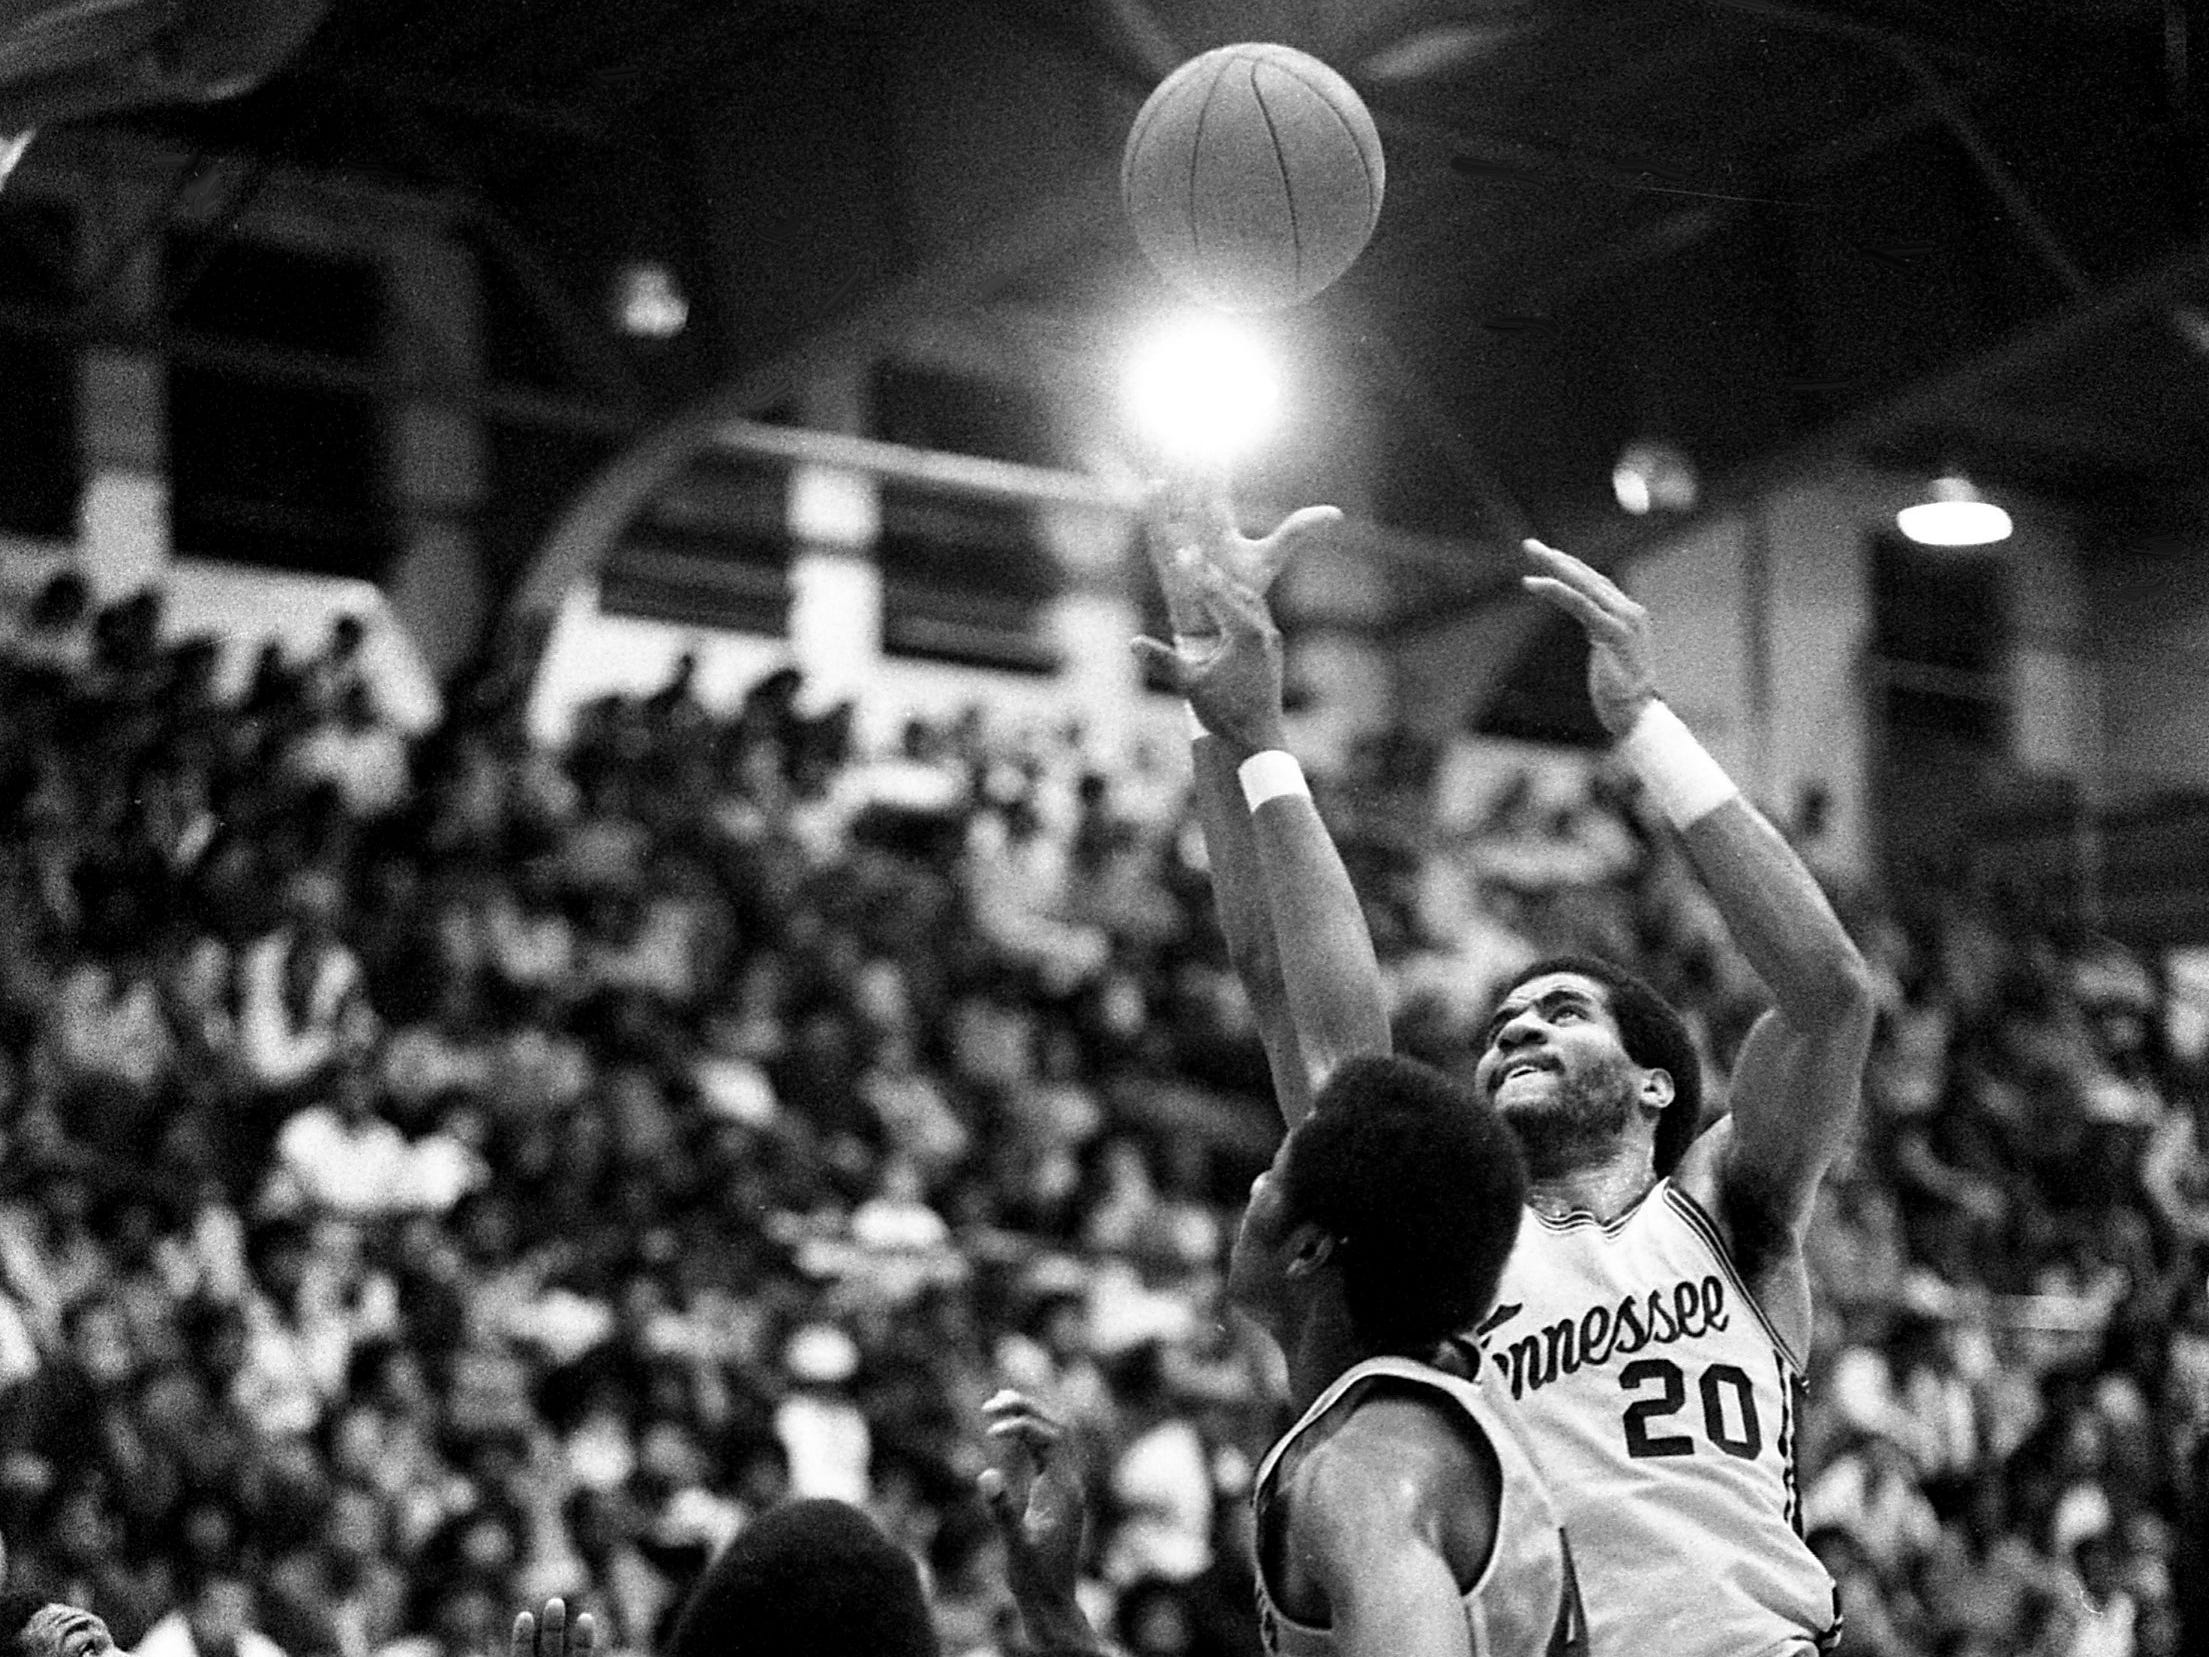 Tennessee State's Billy Tucker (20) moves inside for a shot attempt against Alabama State at the Kean's Little Garden on Feb. 24, 1979. Tennessee State lost 84-81 in its season finale to finish 20-6 for the season.